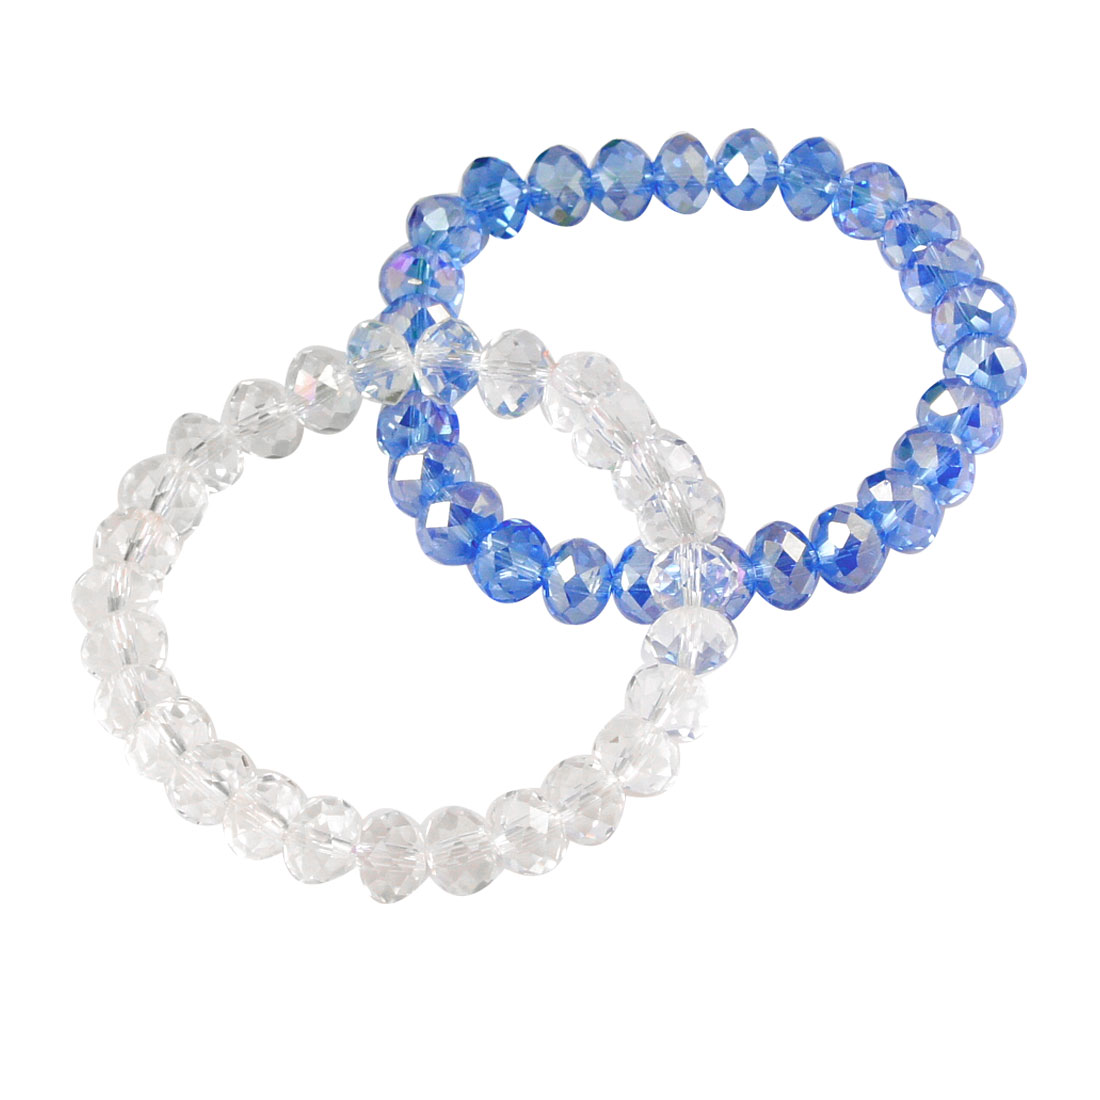 Blue Clear Faux Glittery Crystal Beads Stretchy Bracelets Bangle for Woman 2 Pcs